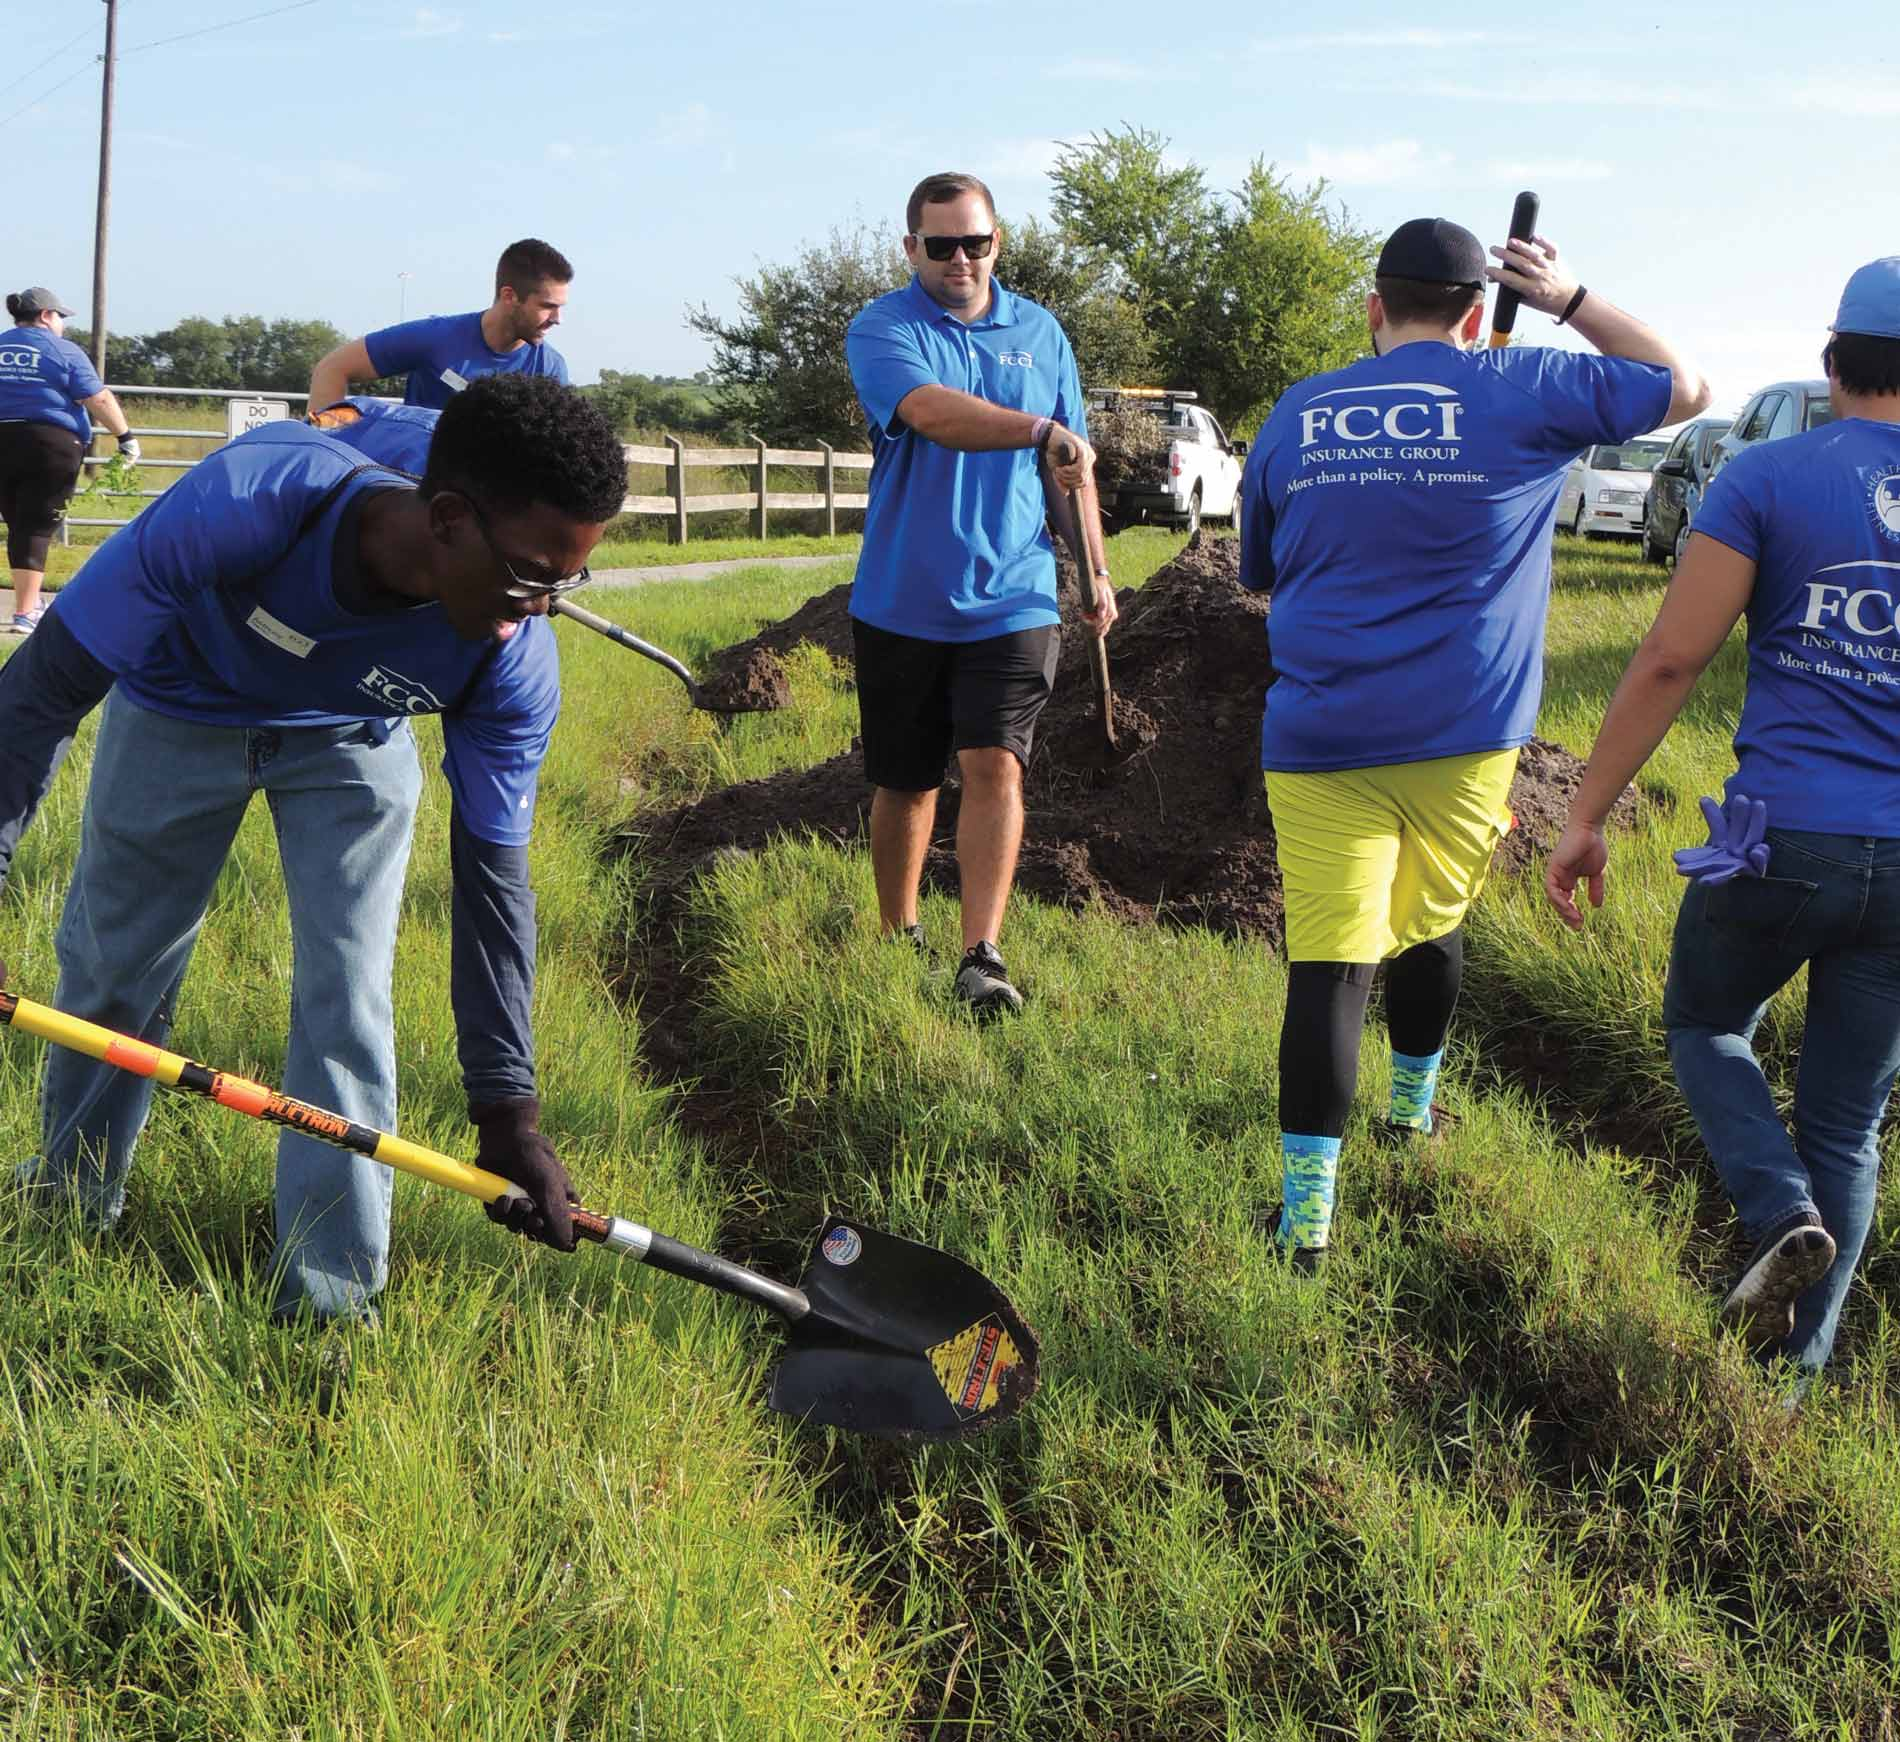 Image of FCCI team volunteering at the Celery Fields in Sarasota